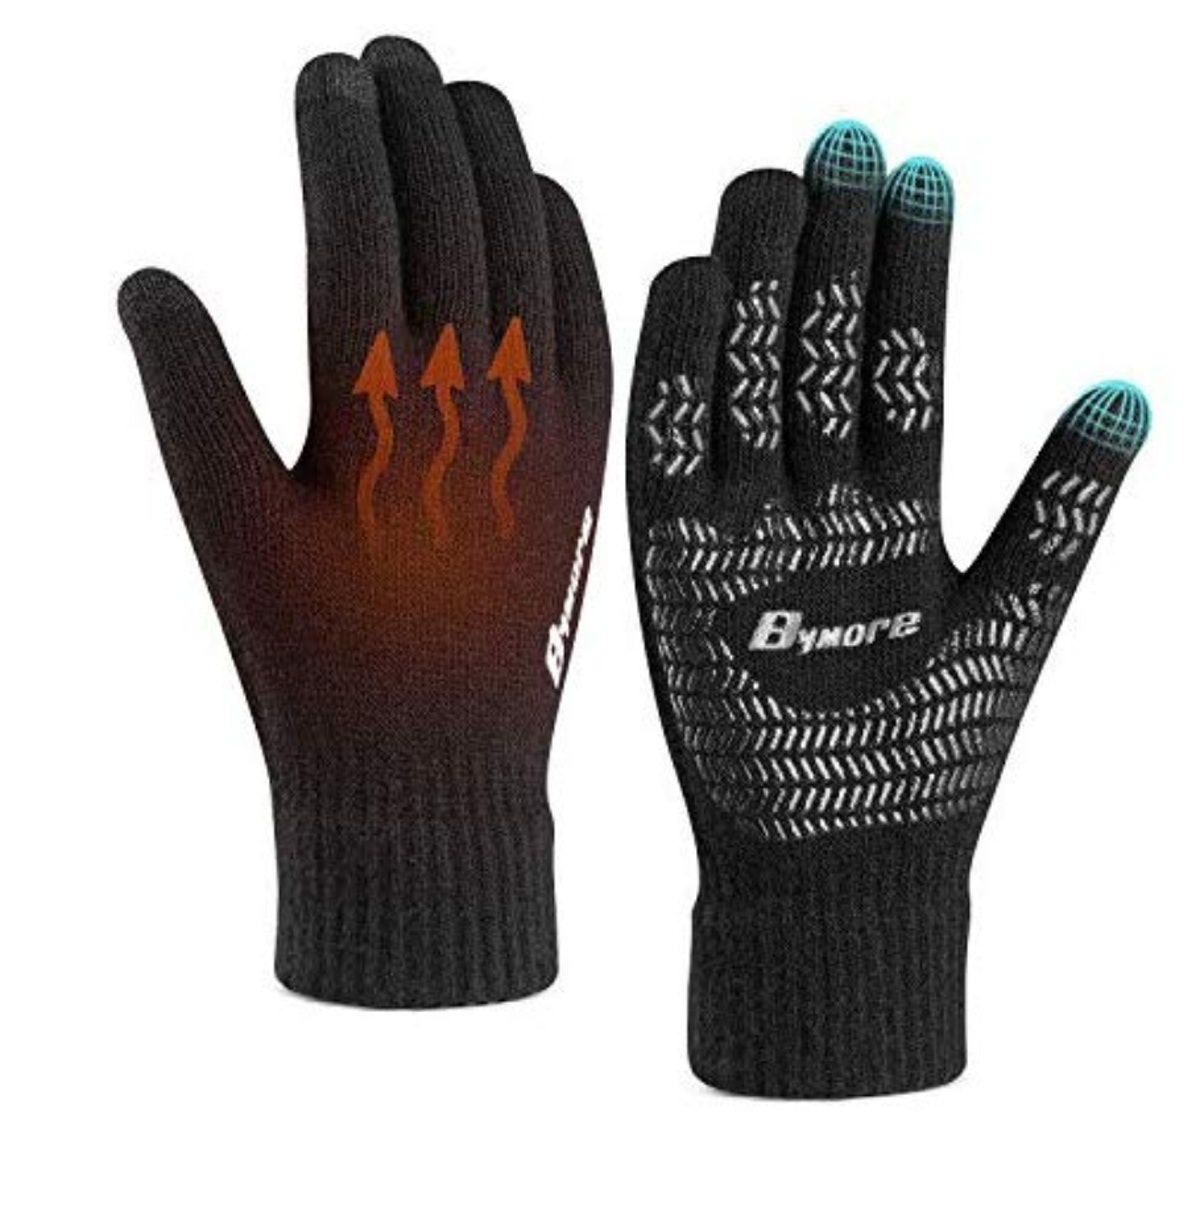 BYMORE Touchscreen Gloves